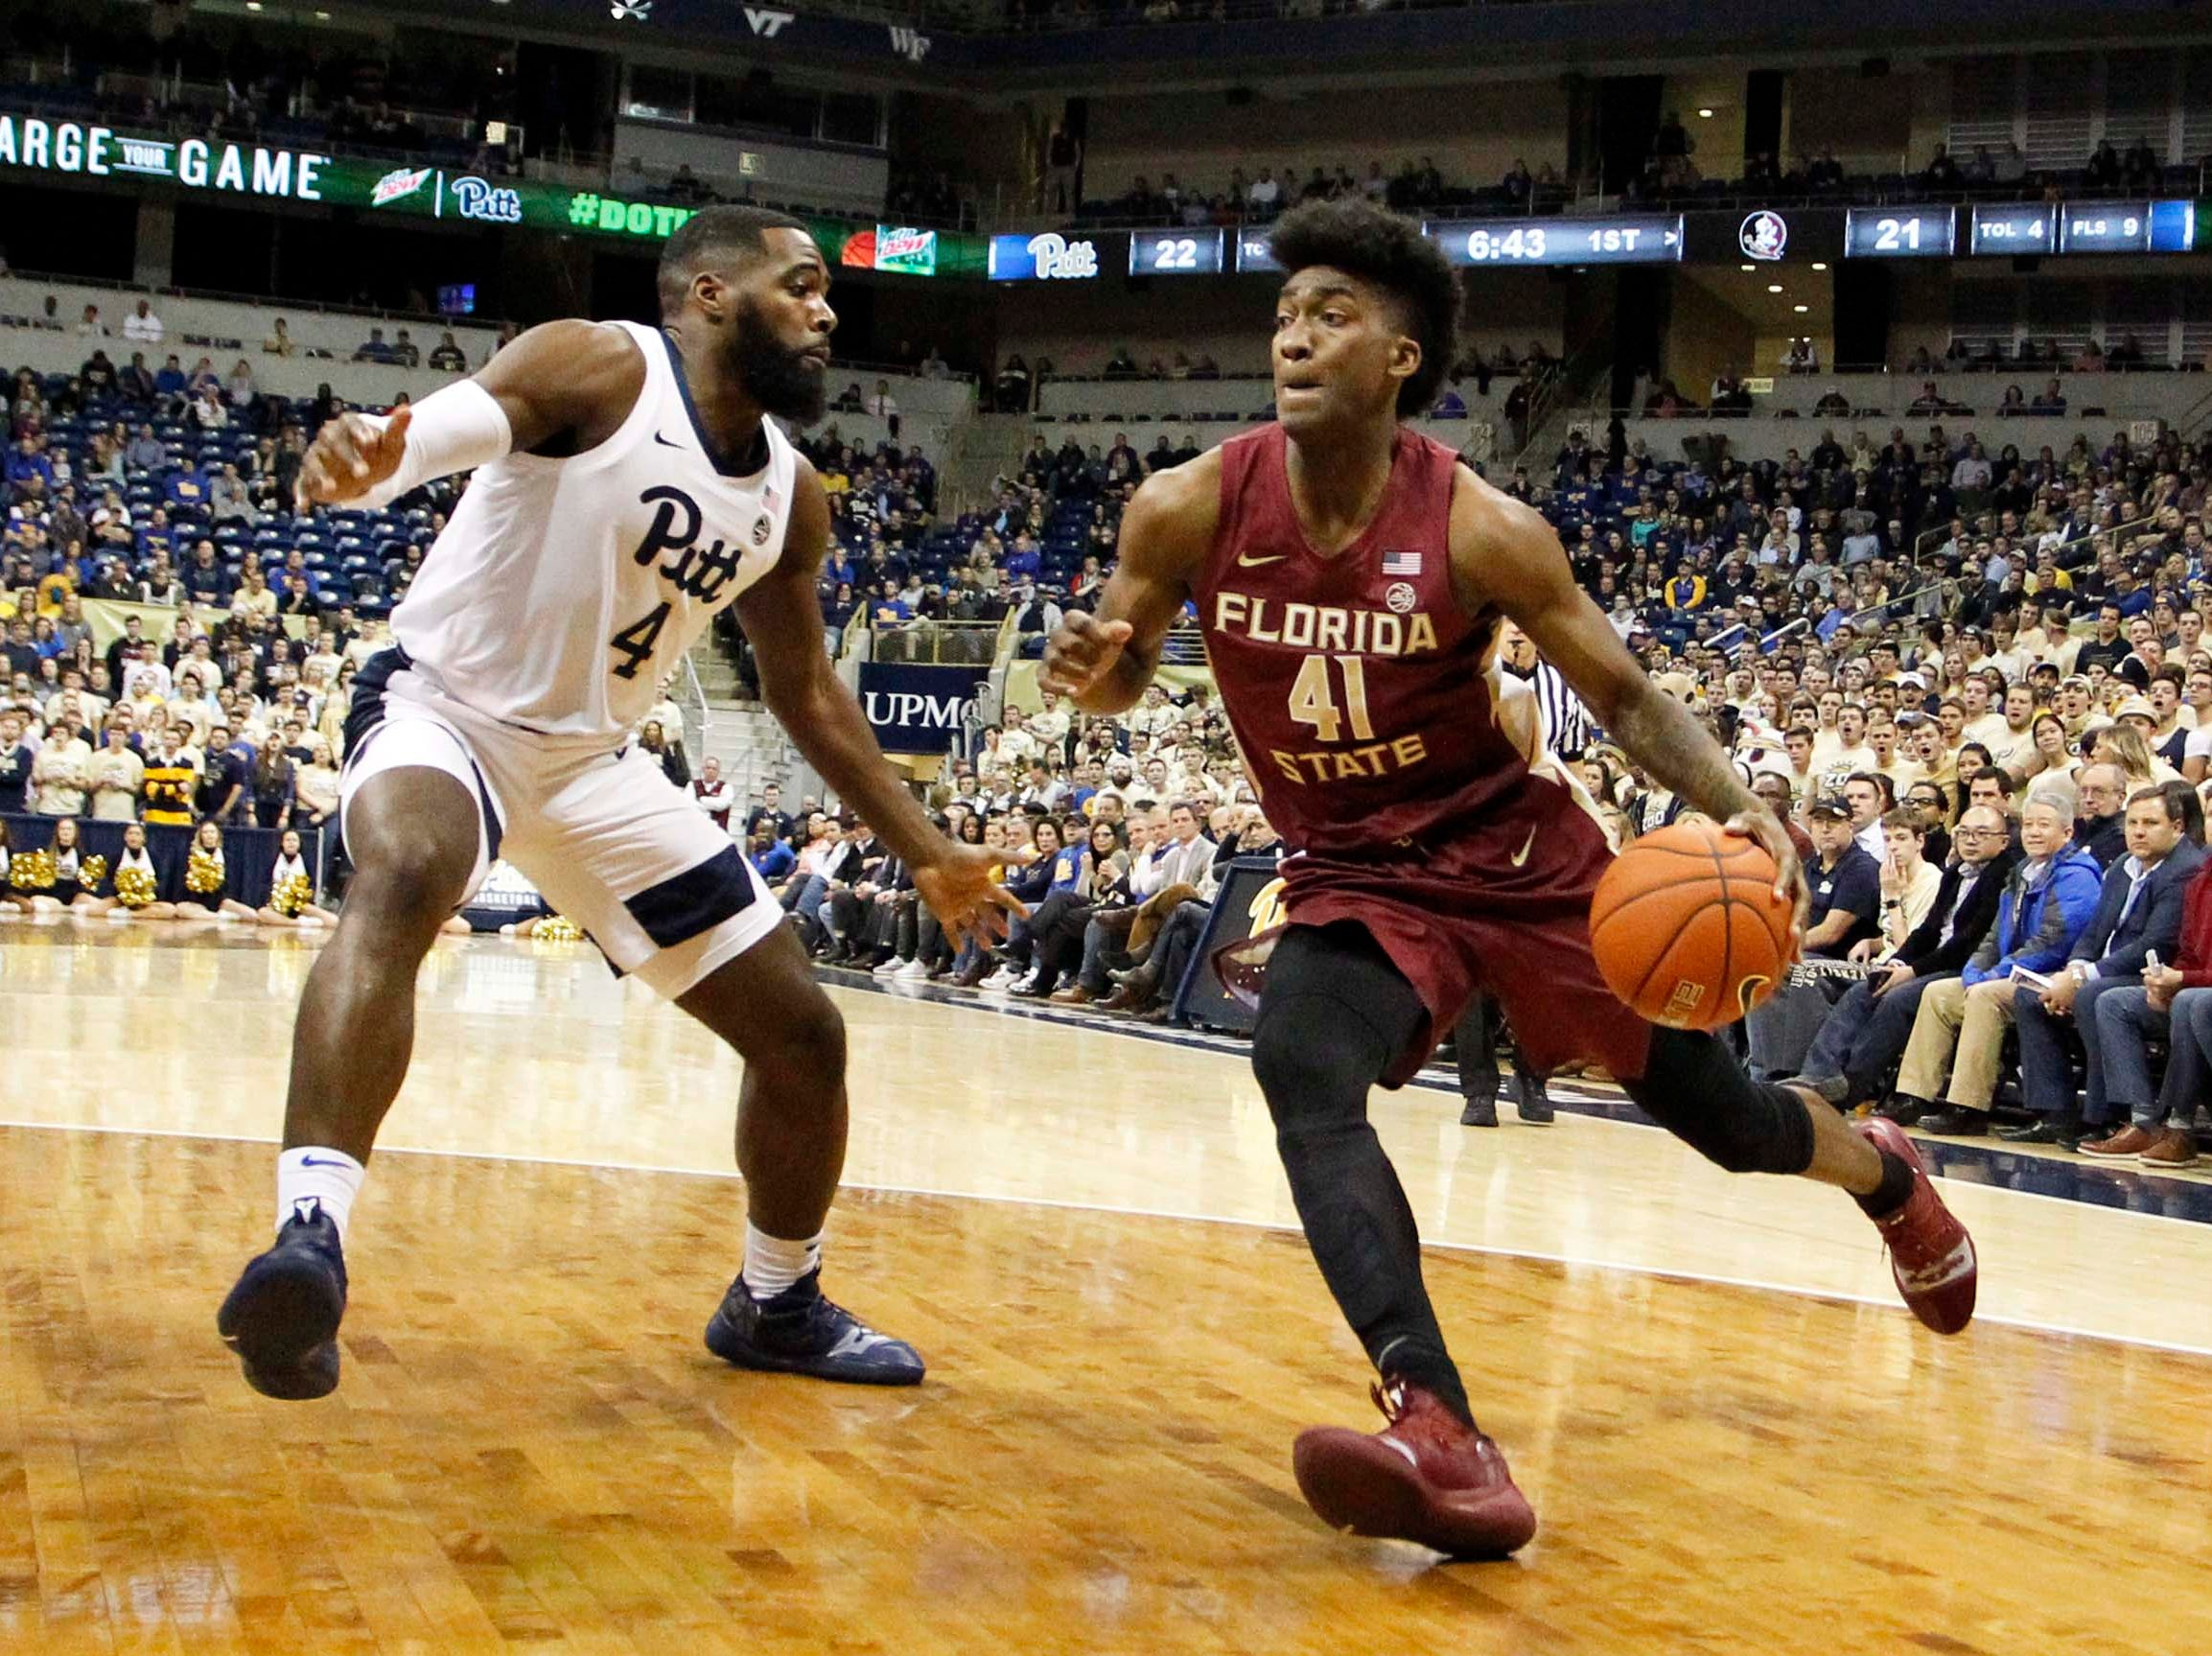 Jan 14, 2019; Pittsburgh, PA, USA; Florida State Seminoles guard Terance Mann (wearing 41) drives to the basket against Pittsburgh Panthers guard Jared Wilson-Frame (4) during the first half at the Petersen Events Center. Mandatory Credit: Charles LeClaire-USA TODAY Sports